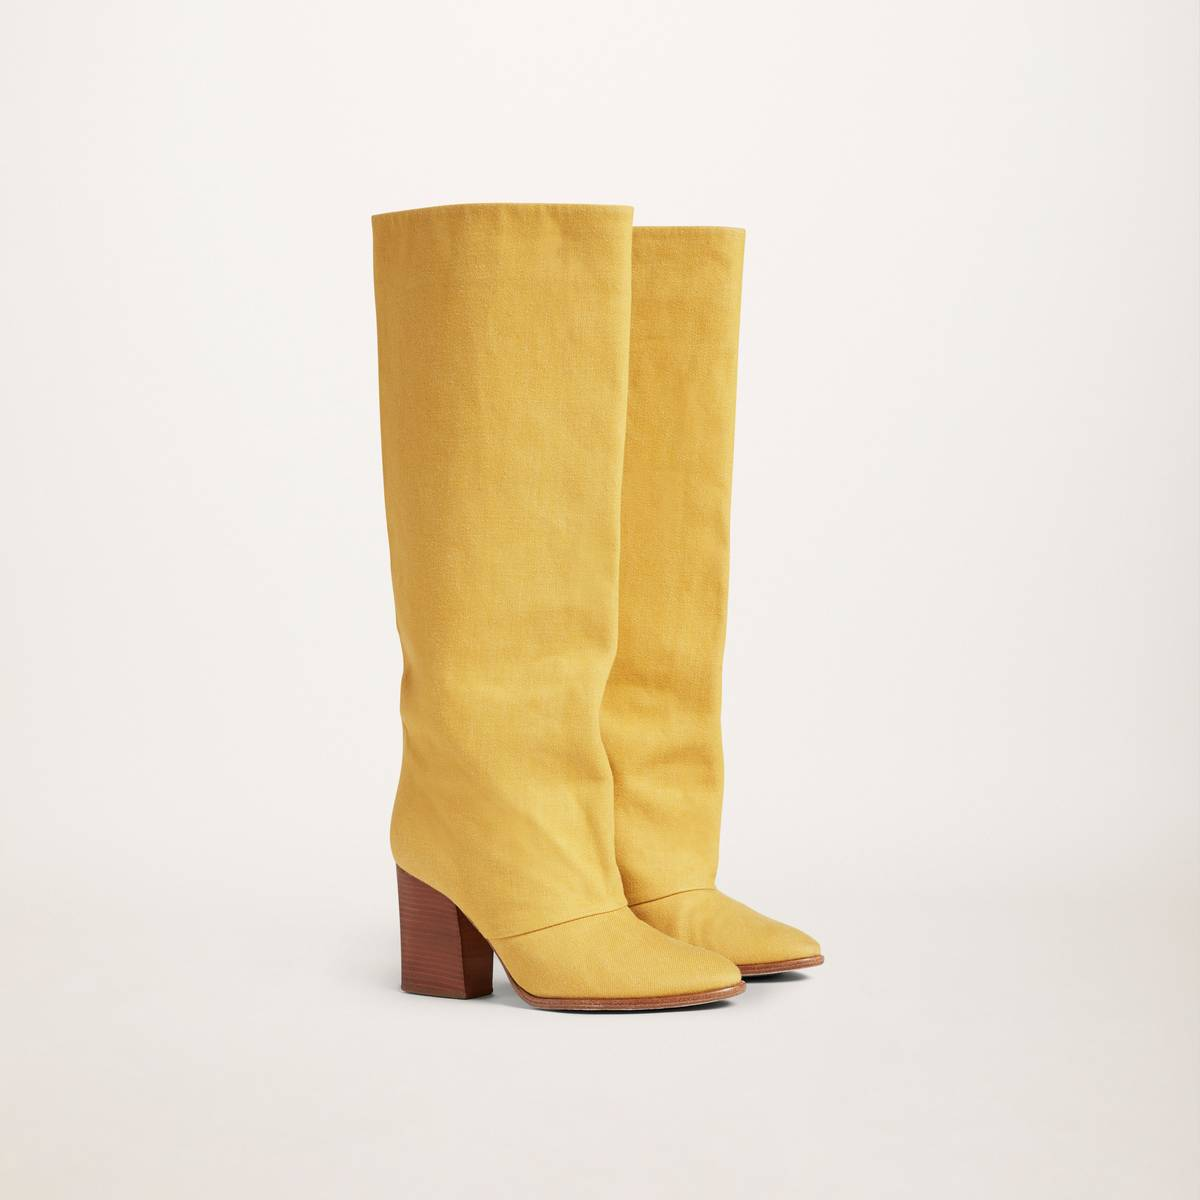 Denim knee-high straight boot with block heel. | MARC JACOBS Women\\'s Dolly Boots in Yellow, Size 37